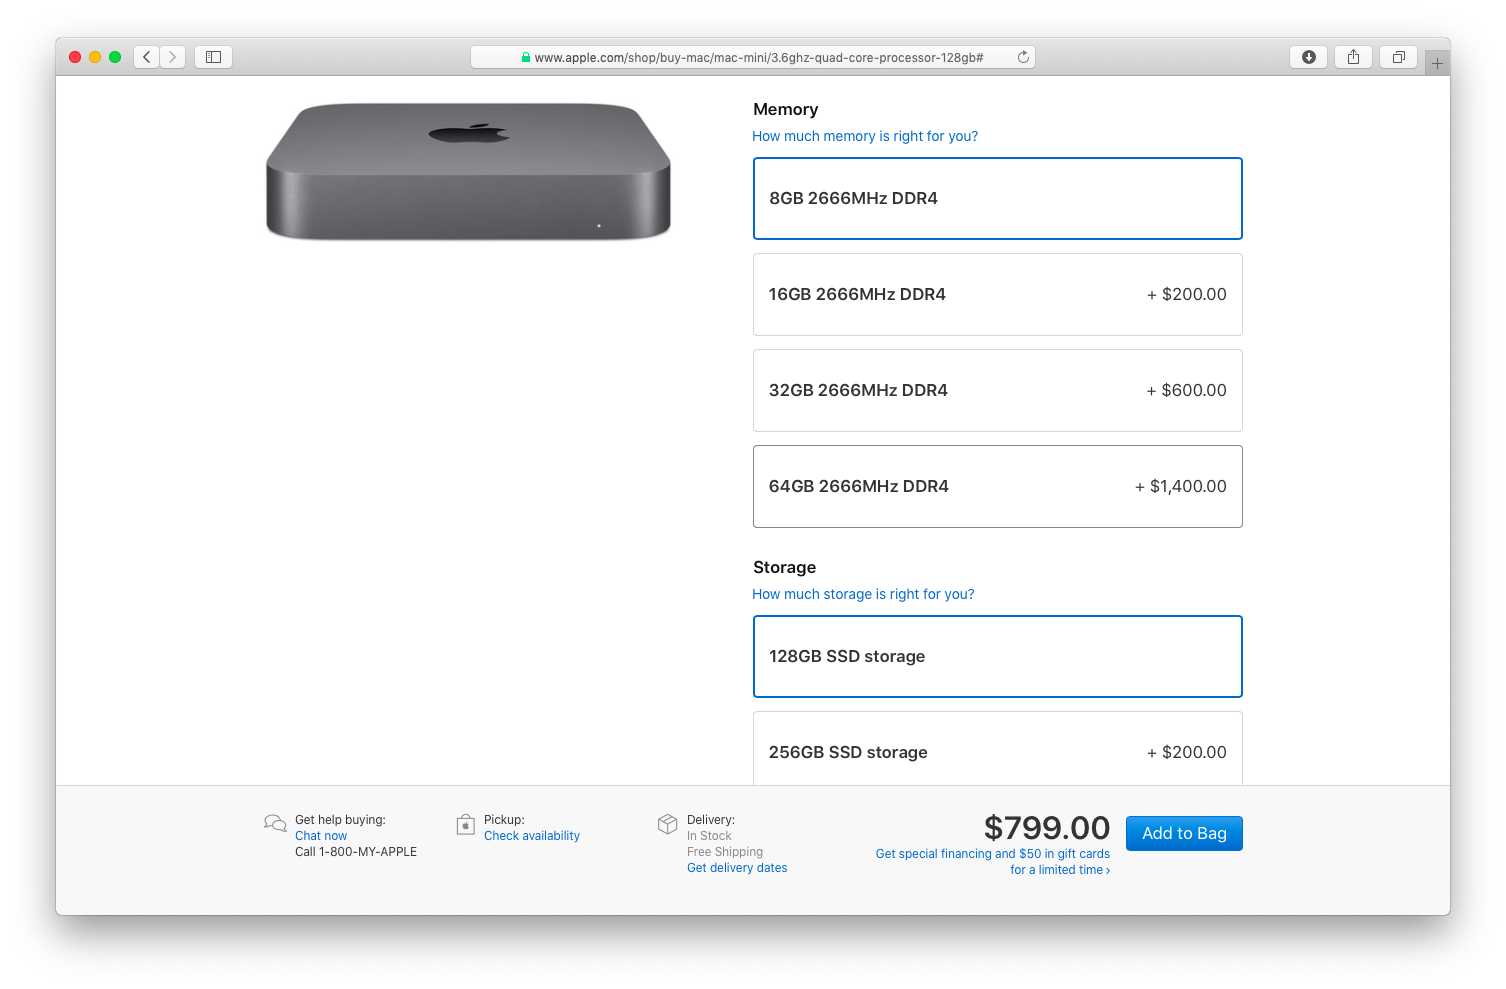 Save hundreds of dollars by upgrading RAM in your 2018 Mac